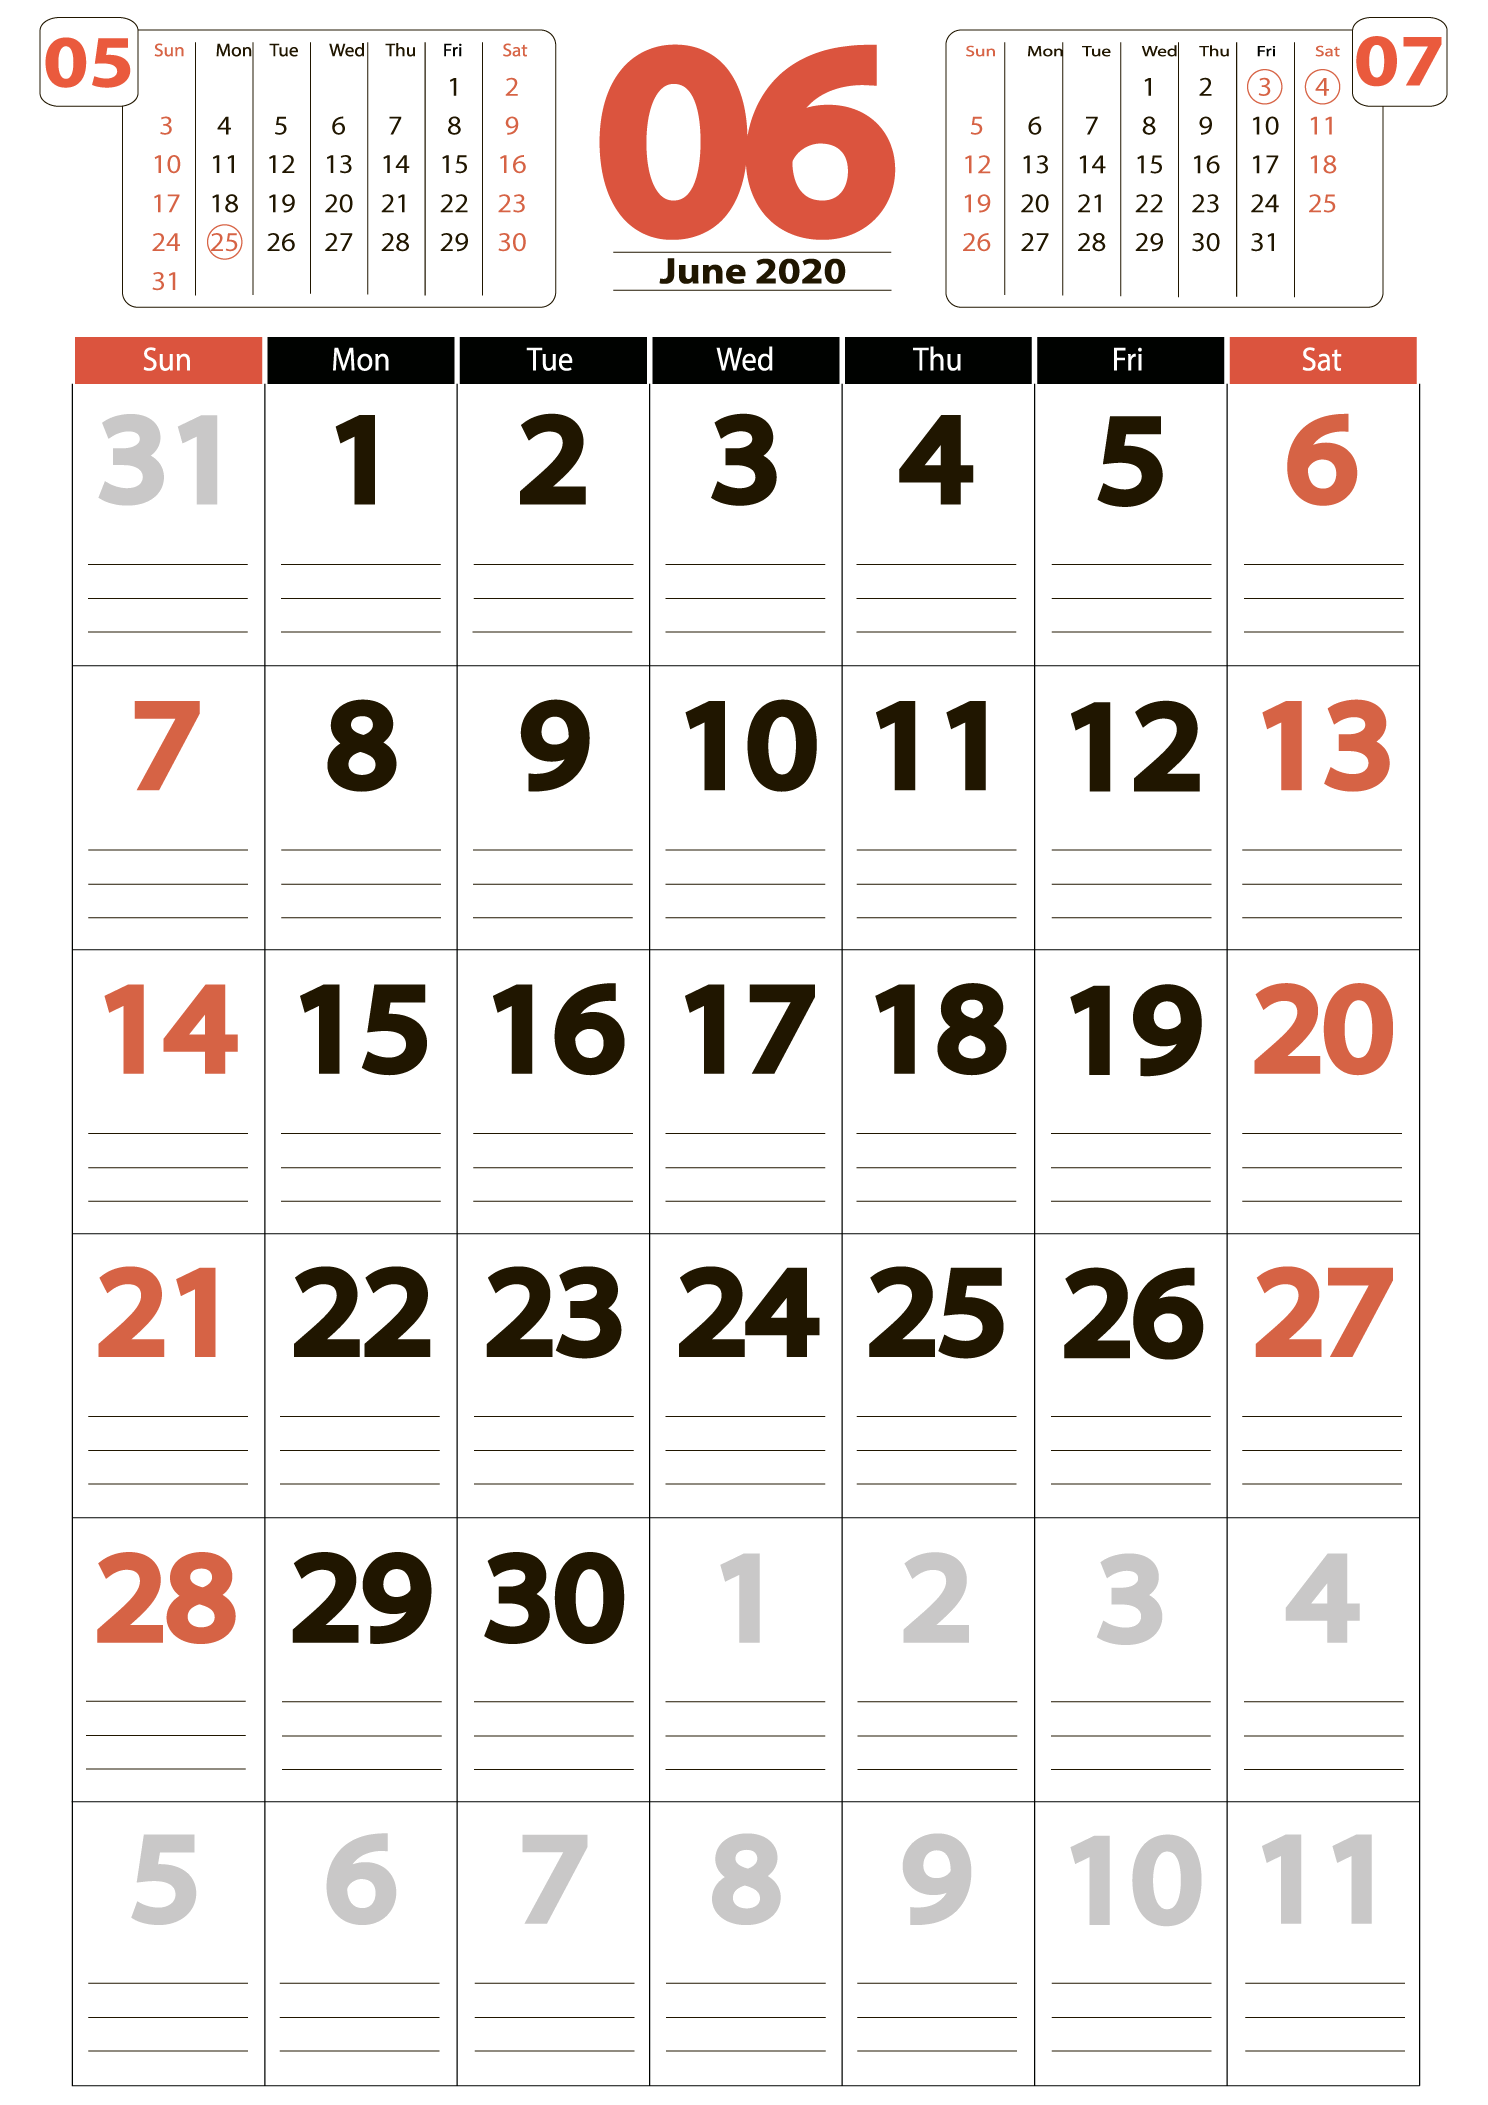 Download calendar june 2020